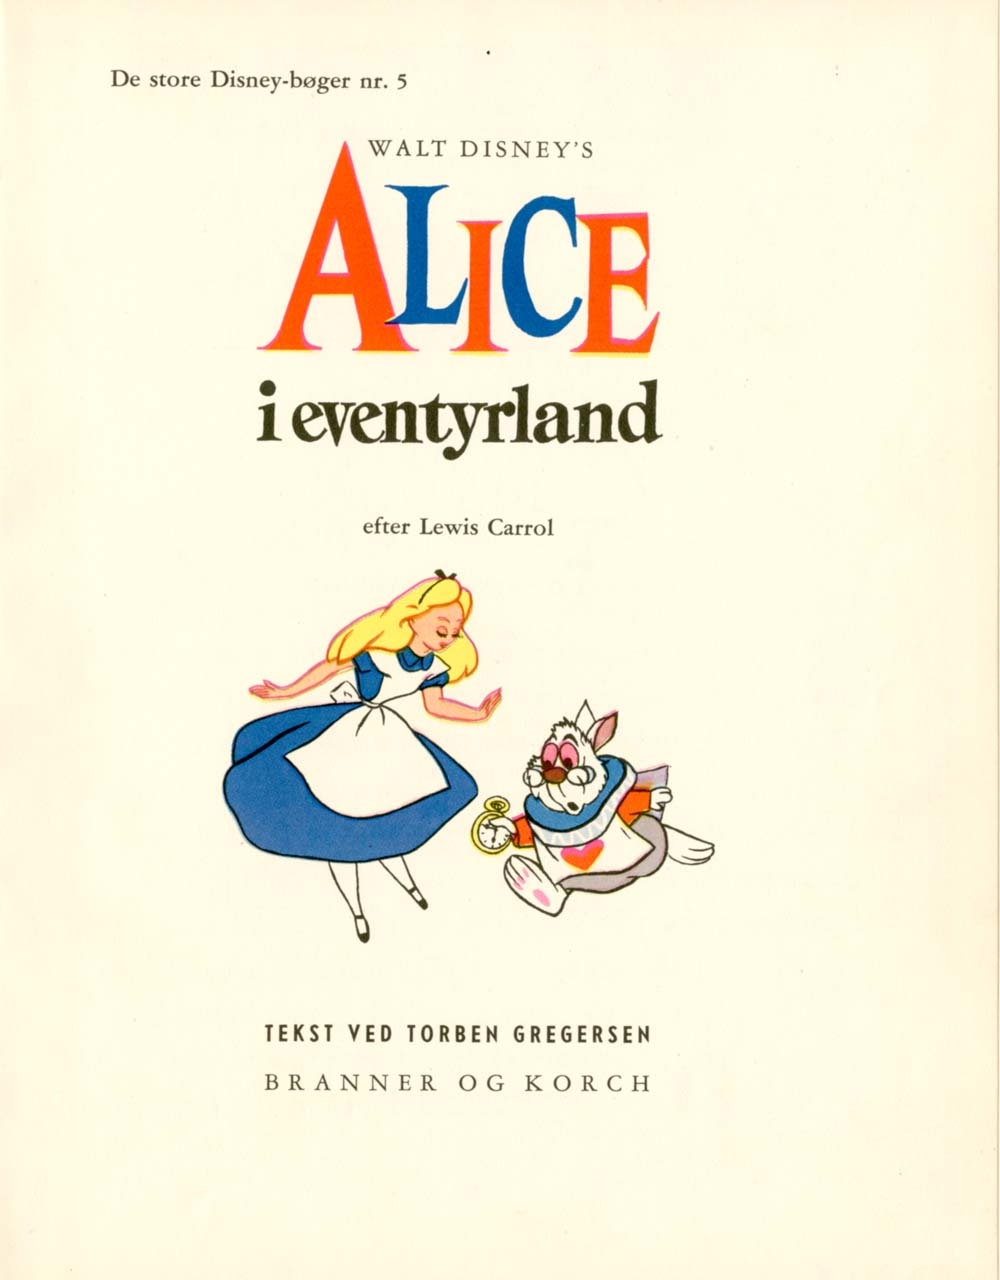 vintage disney alice this alice book was fifth in a series of disney books the great disney children s books according to google translate that included dumbo pinocchio